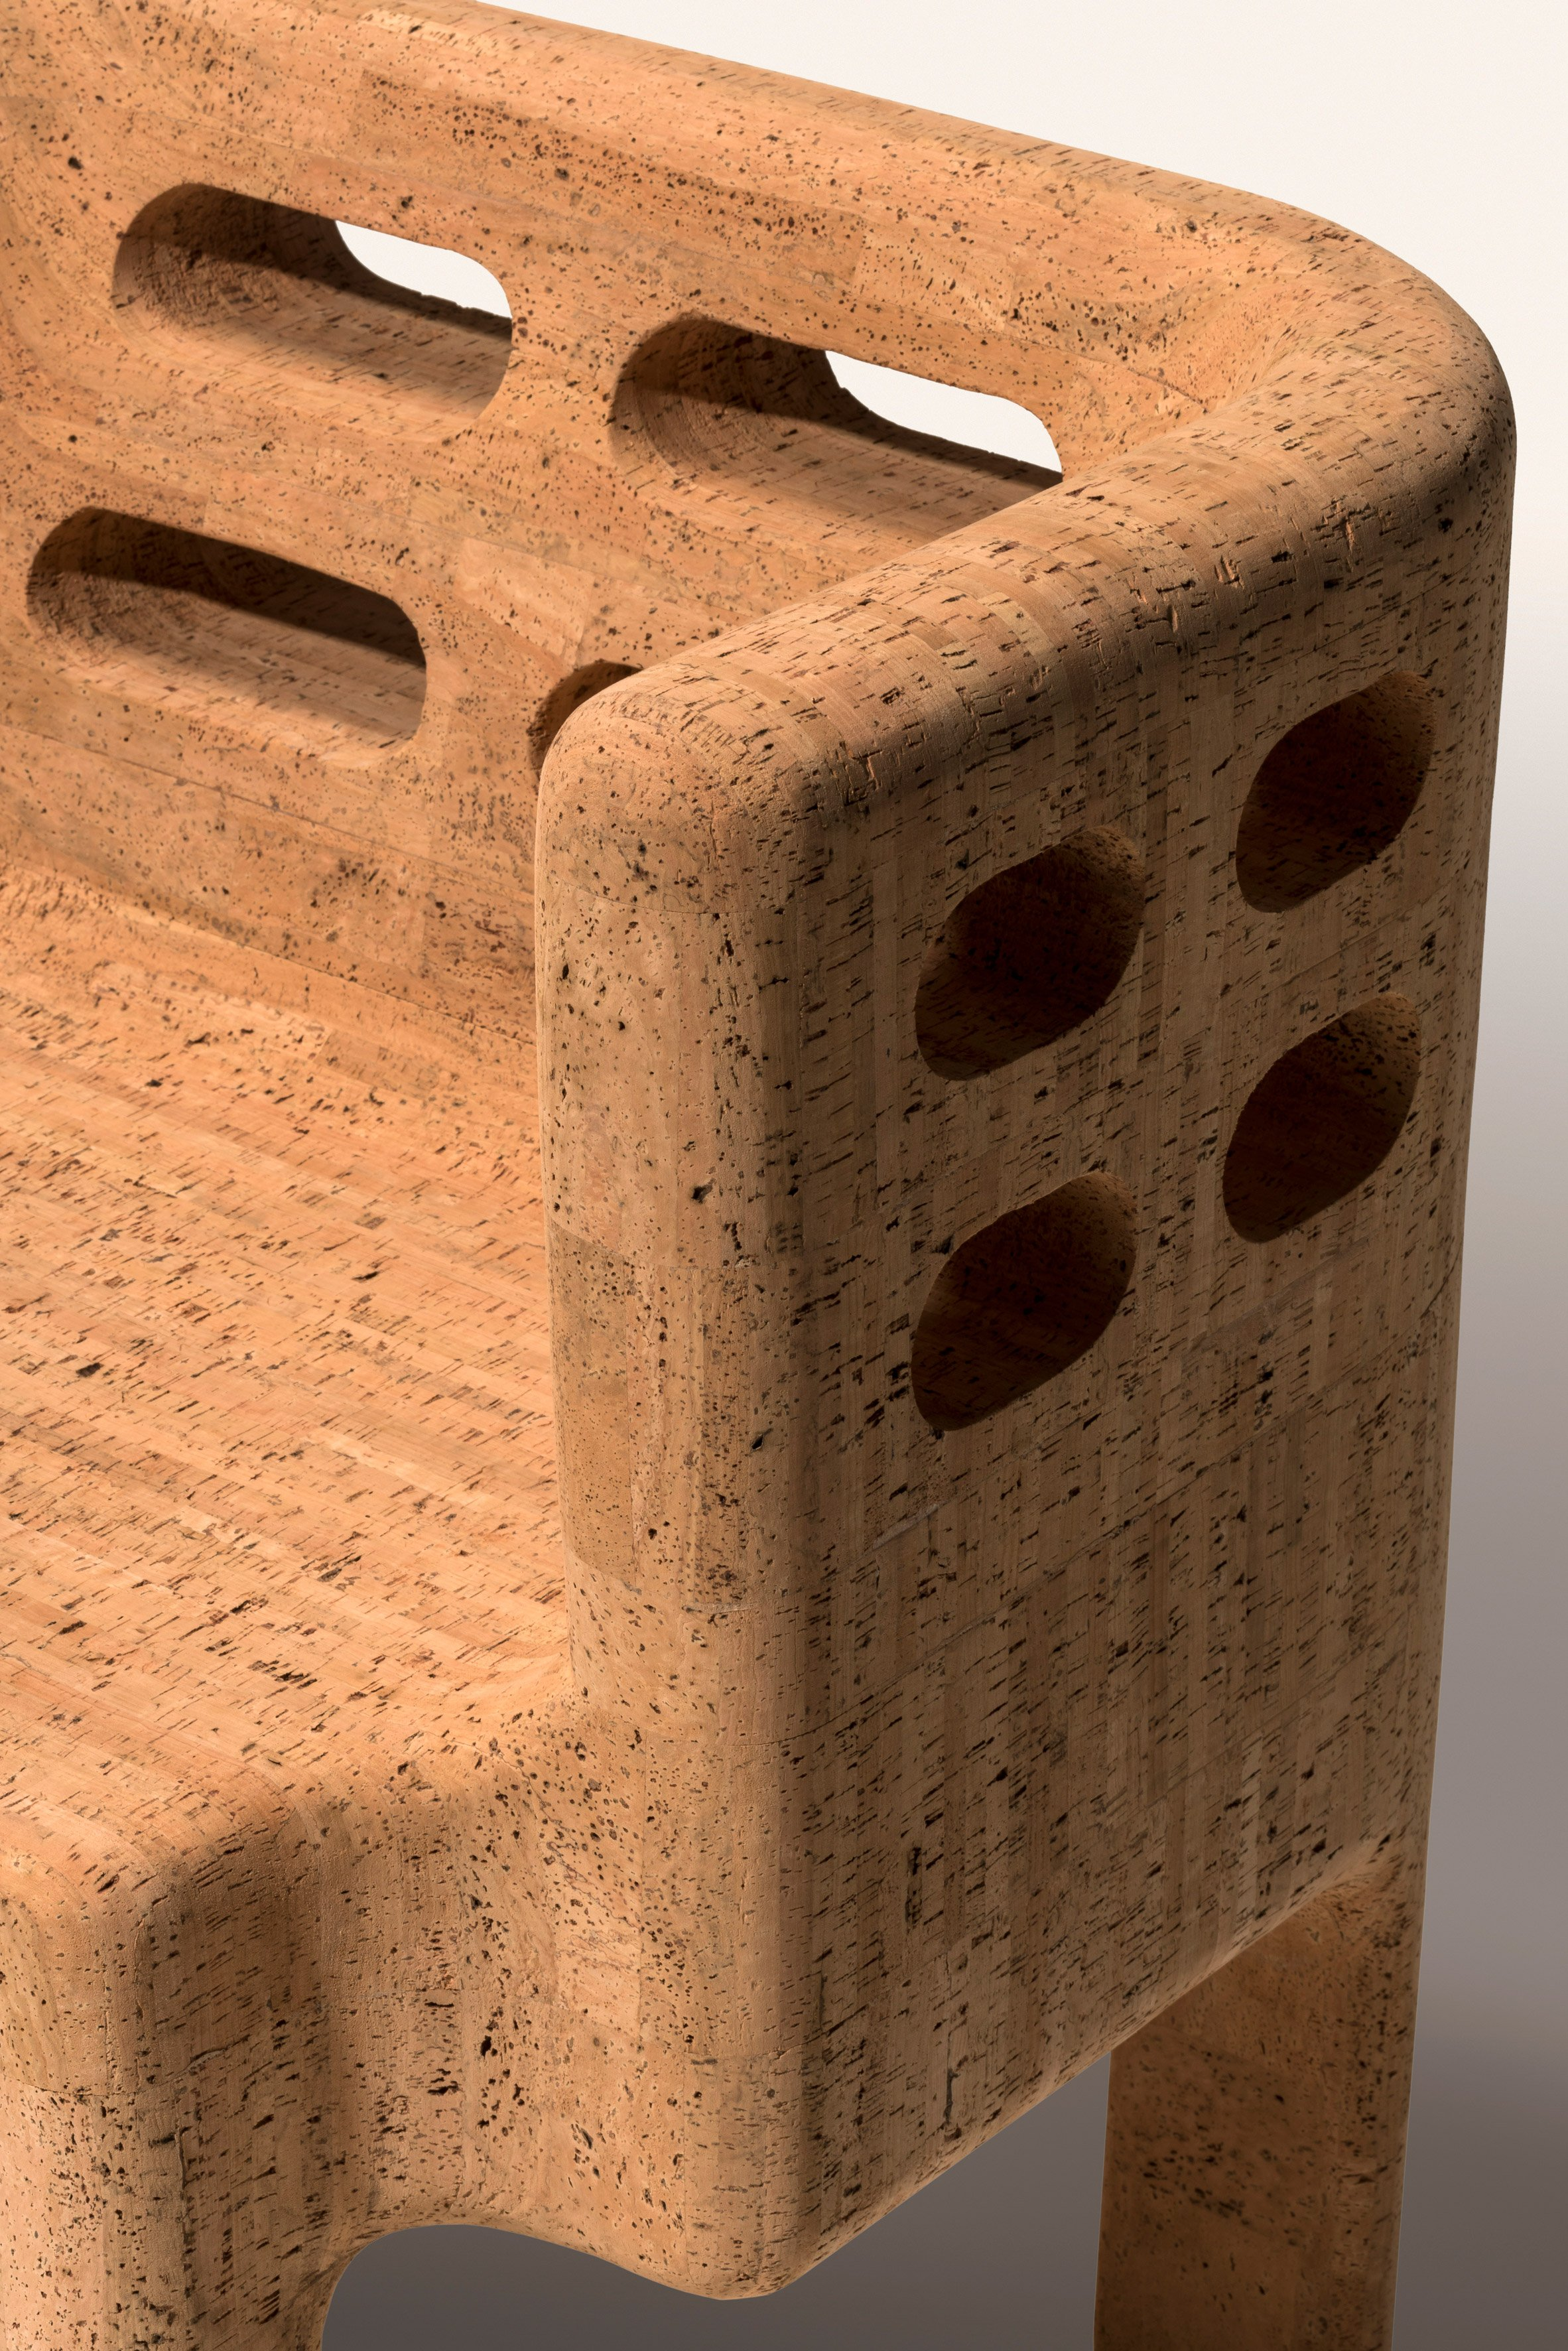 Sobreiro Collection by the Campana brothers